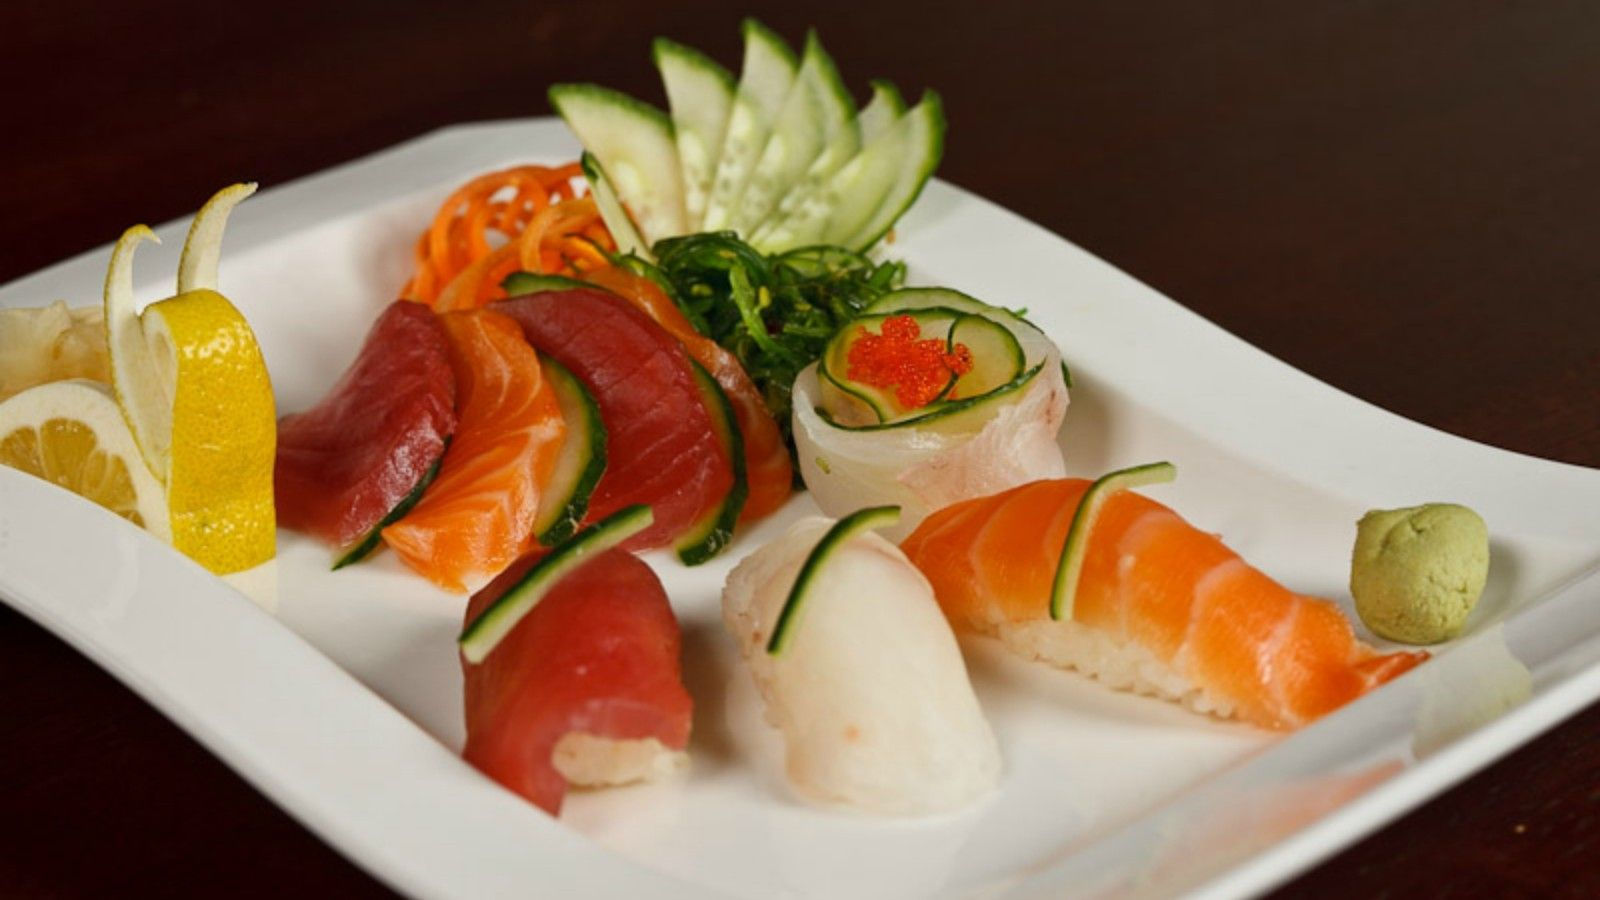 Morristown Restaurants - Sushi Platter